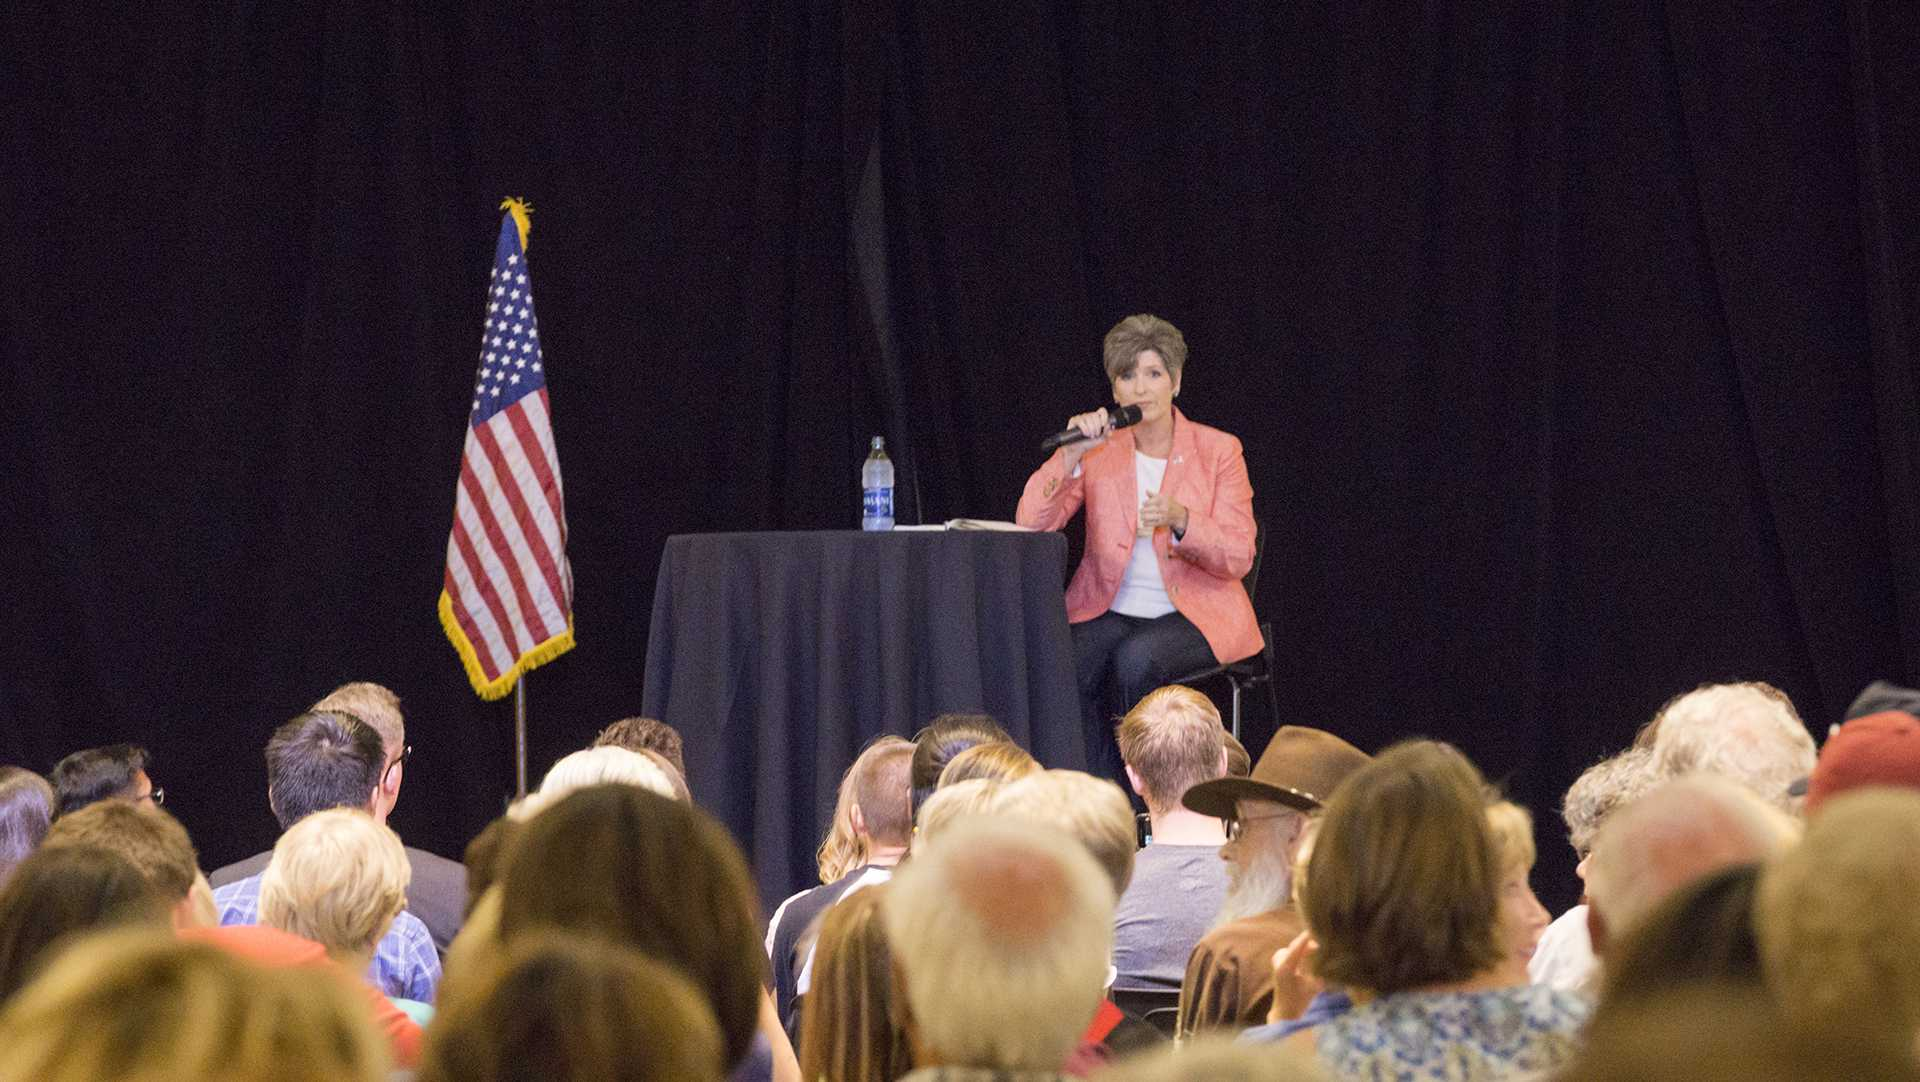 Iowa Sen. Joni Ernst, R-Iowa, answers questions at a Town Hall meeting in the Iowa Memorial Union on Friday, Sept. 22, 2017. The crowd was filled with energetic and concerned voters from all political affiliations.  (James Year/The Daily Iowan)